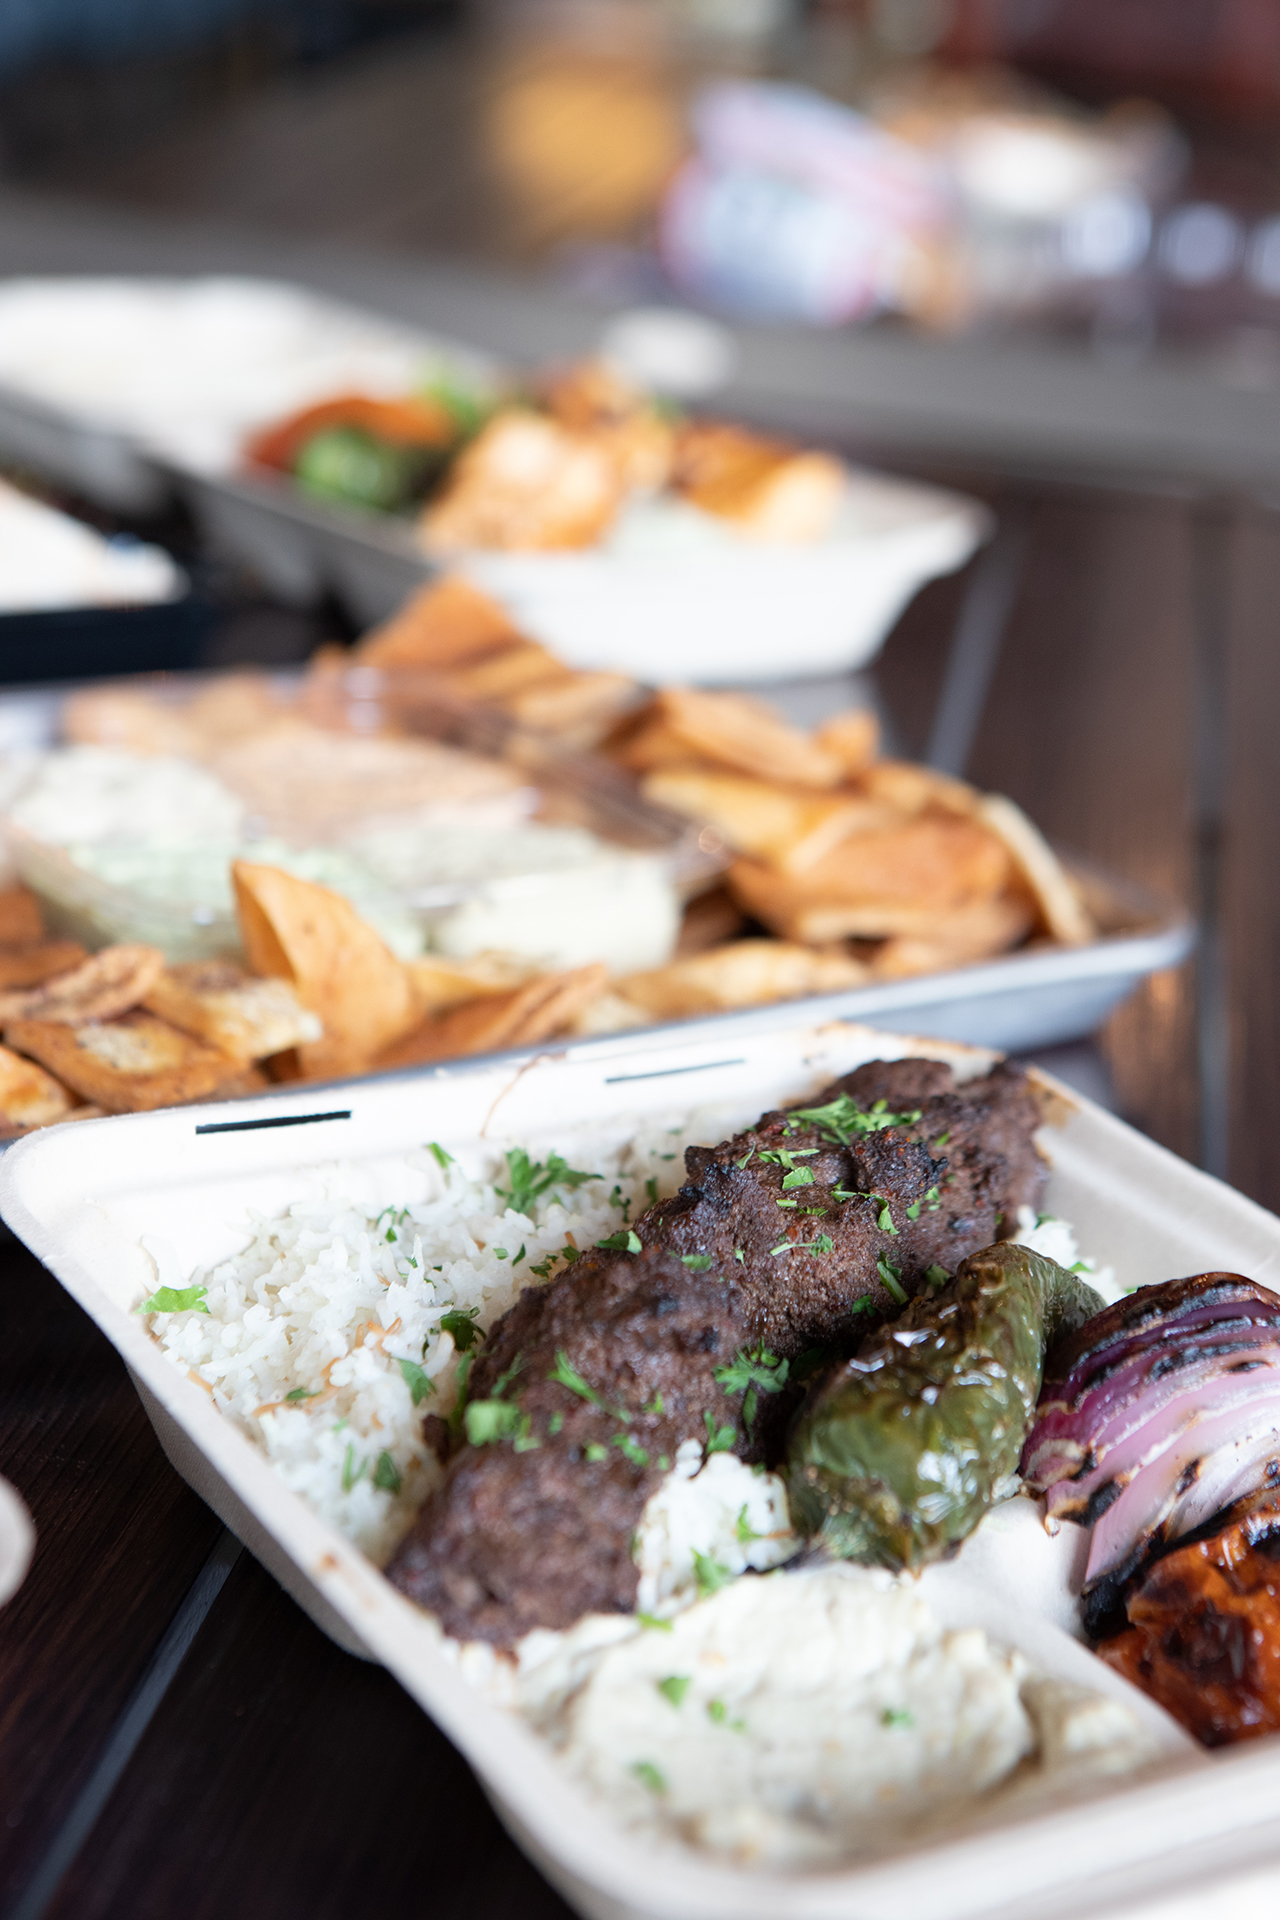 A Beef Kafta Kabob platter is pictured in the foreground on a black metalic table. The Kafta plate is served on a bed or rice, with classic hummus, and grilled vegetable sides. In the blurred background the Kafta Plate is accompanied by a Chicken Kabob platter and a Party Pack that is surrounded by Pita chips.